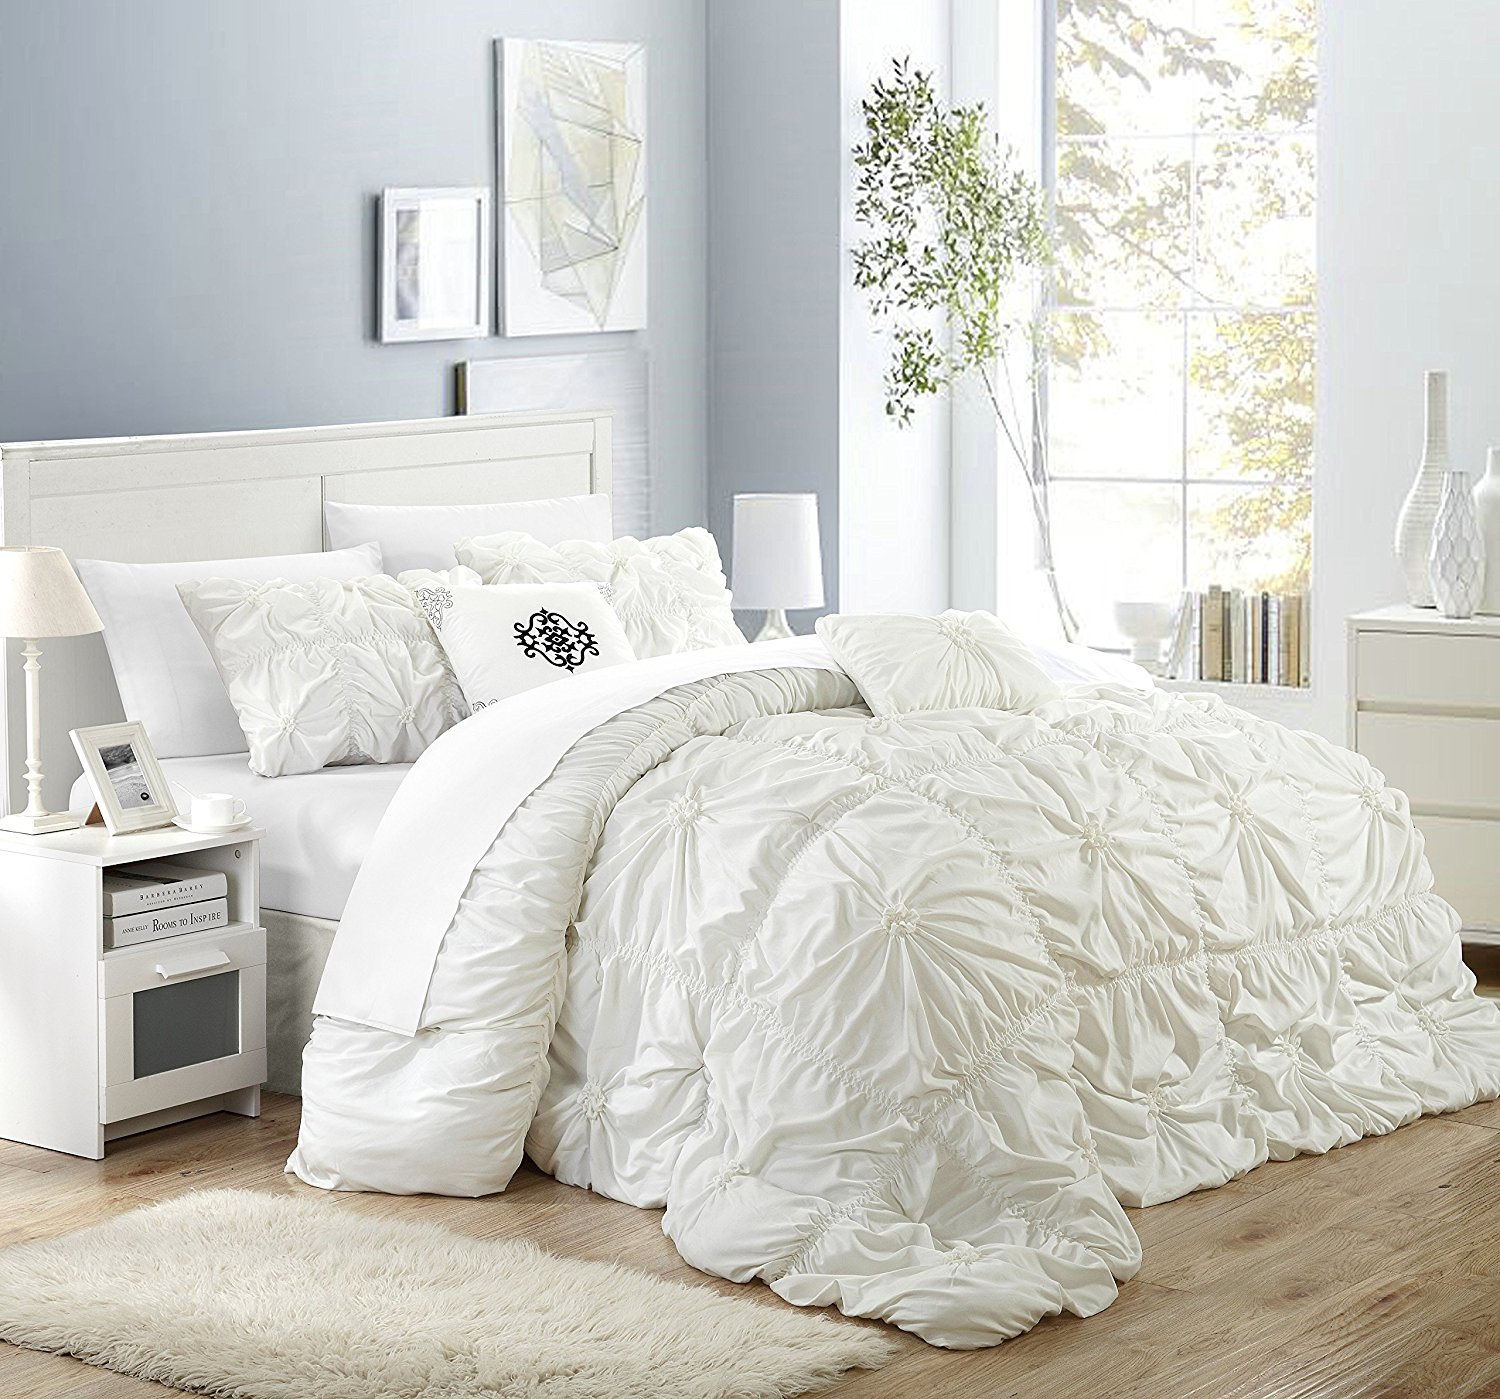 Free Photo White Bed Comforter Bed Bedroom Color Free Download Jooinn